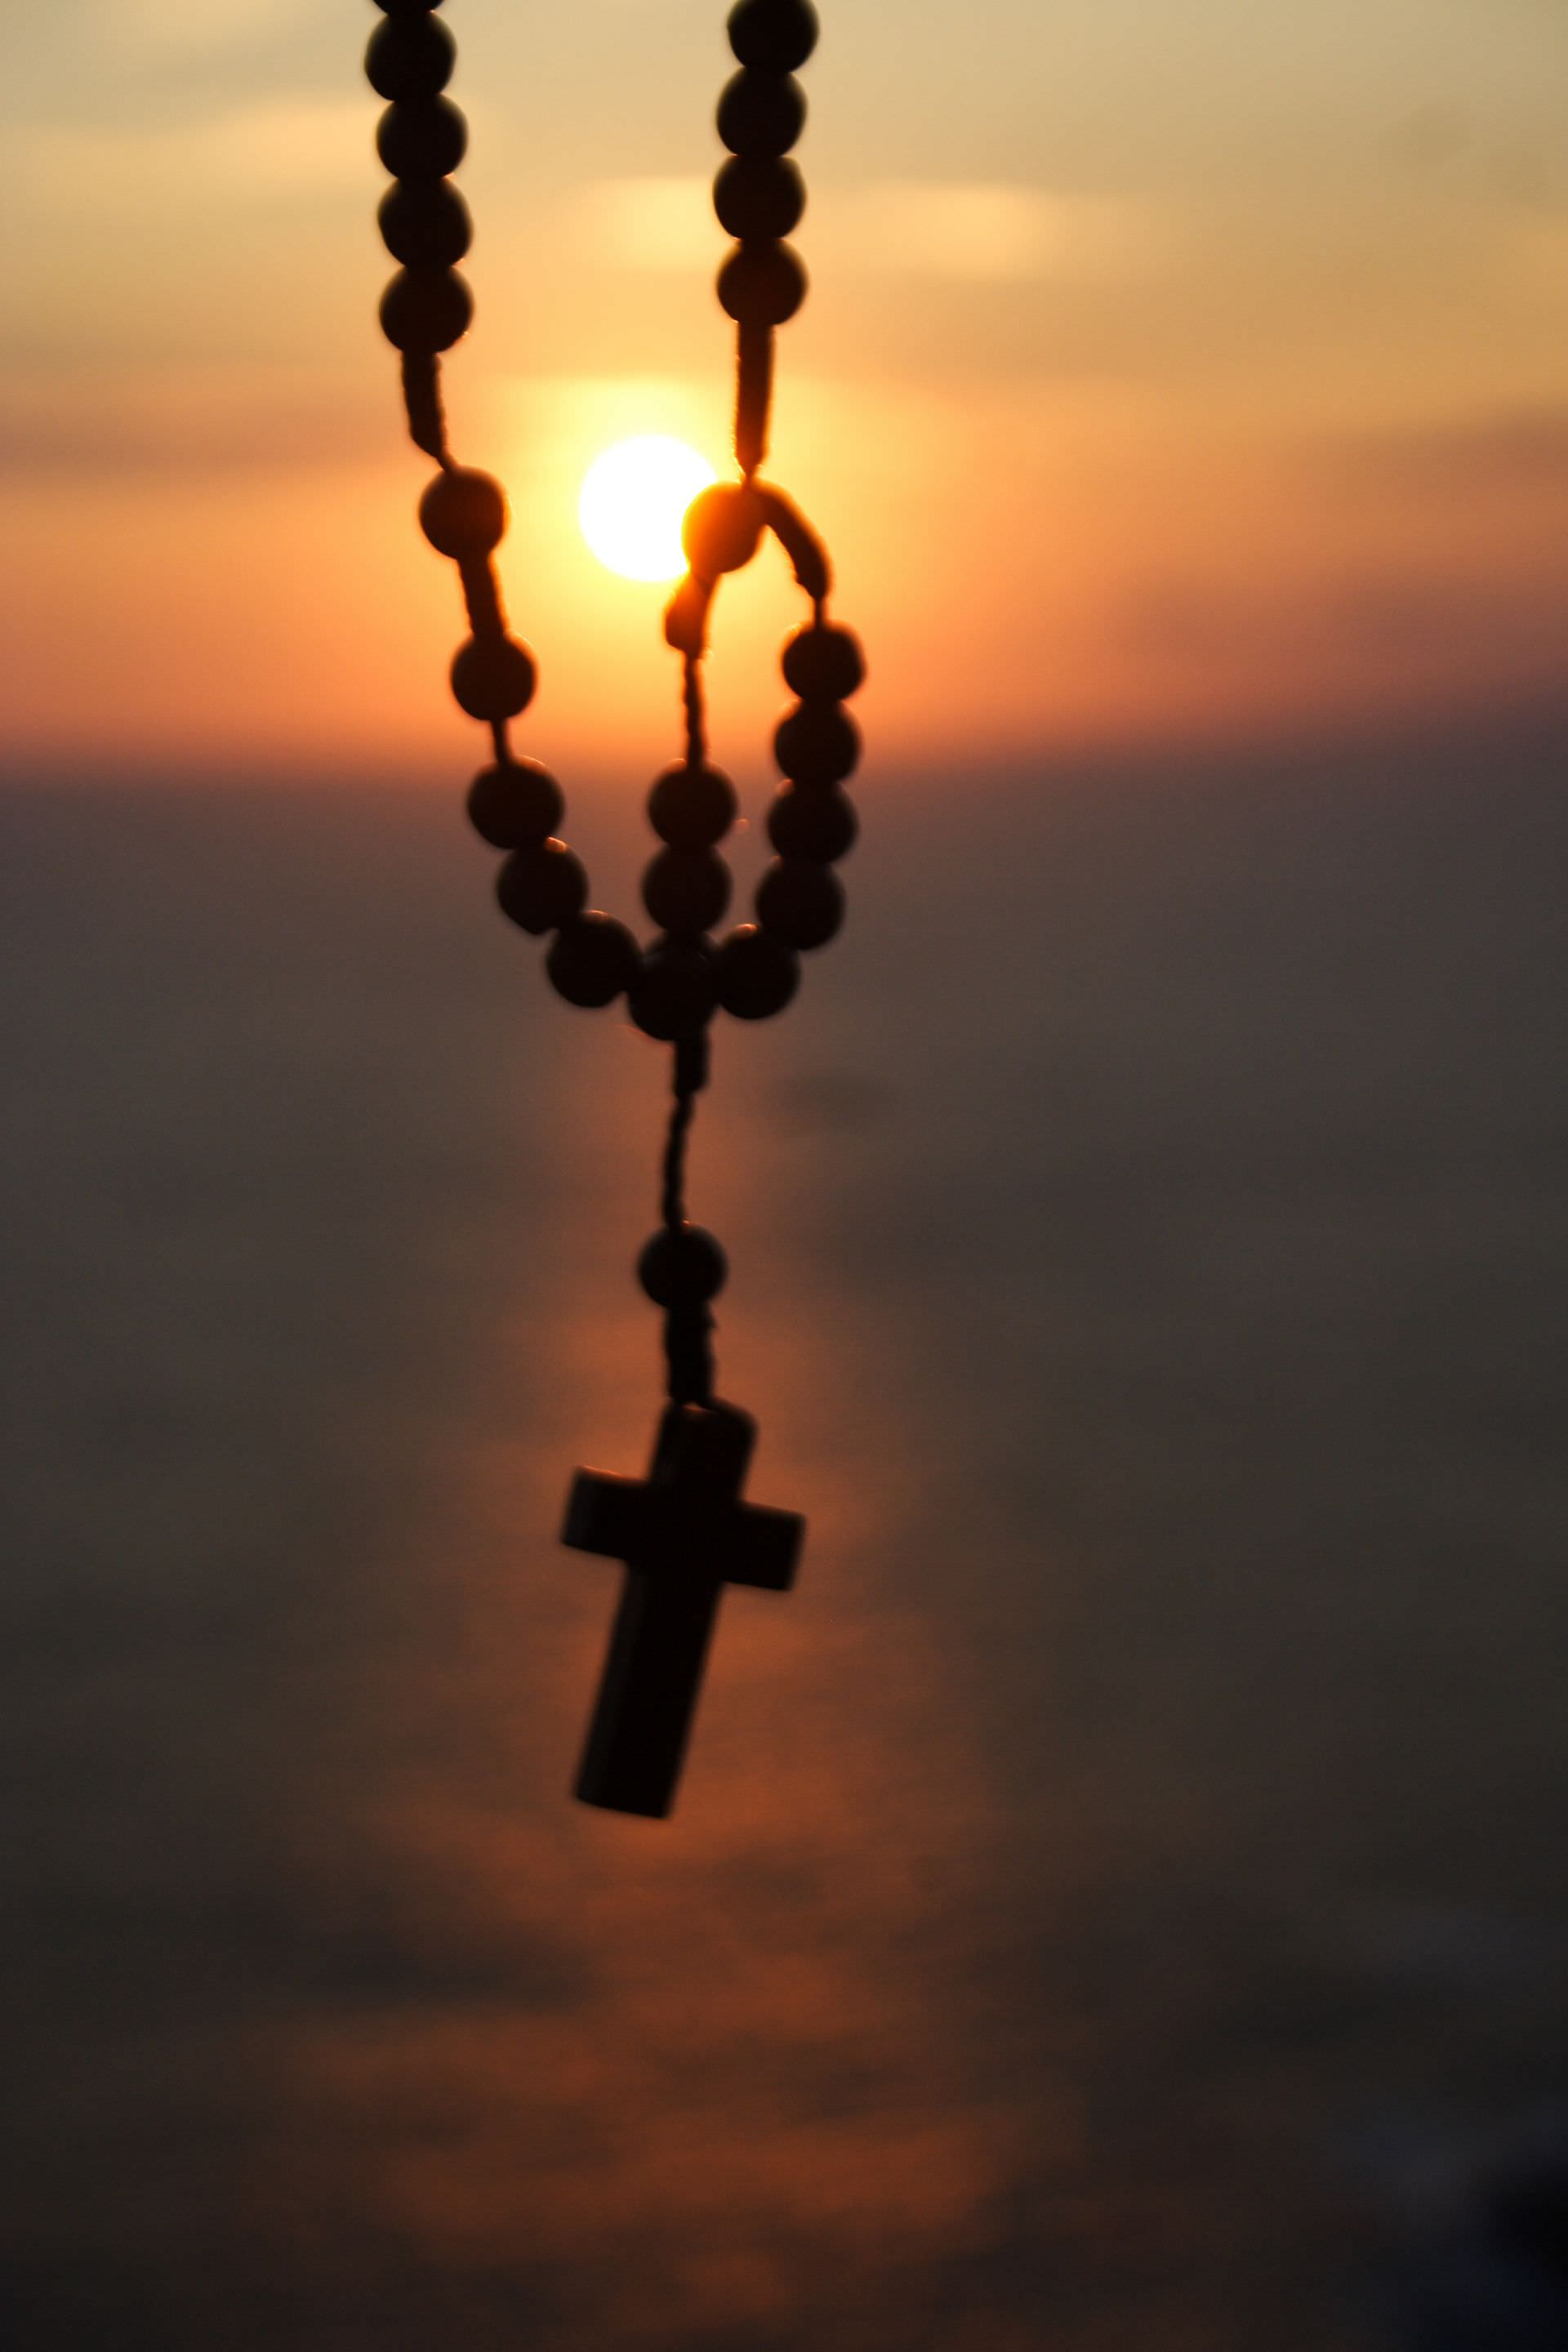 rosary beads, virgin, creation, sun, camandula, timetable, to pray, sentence, network, petition, marian devotion, prayer, father, landscape, played yes, creation, sunset